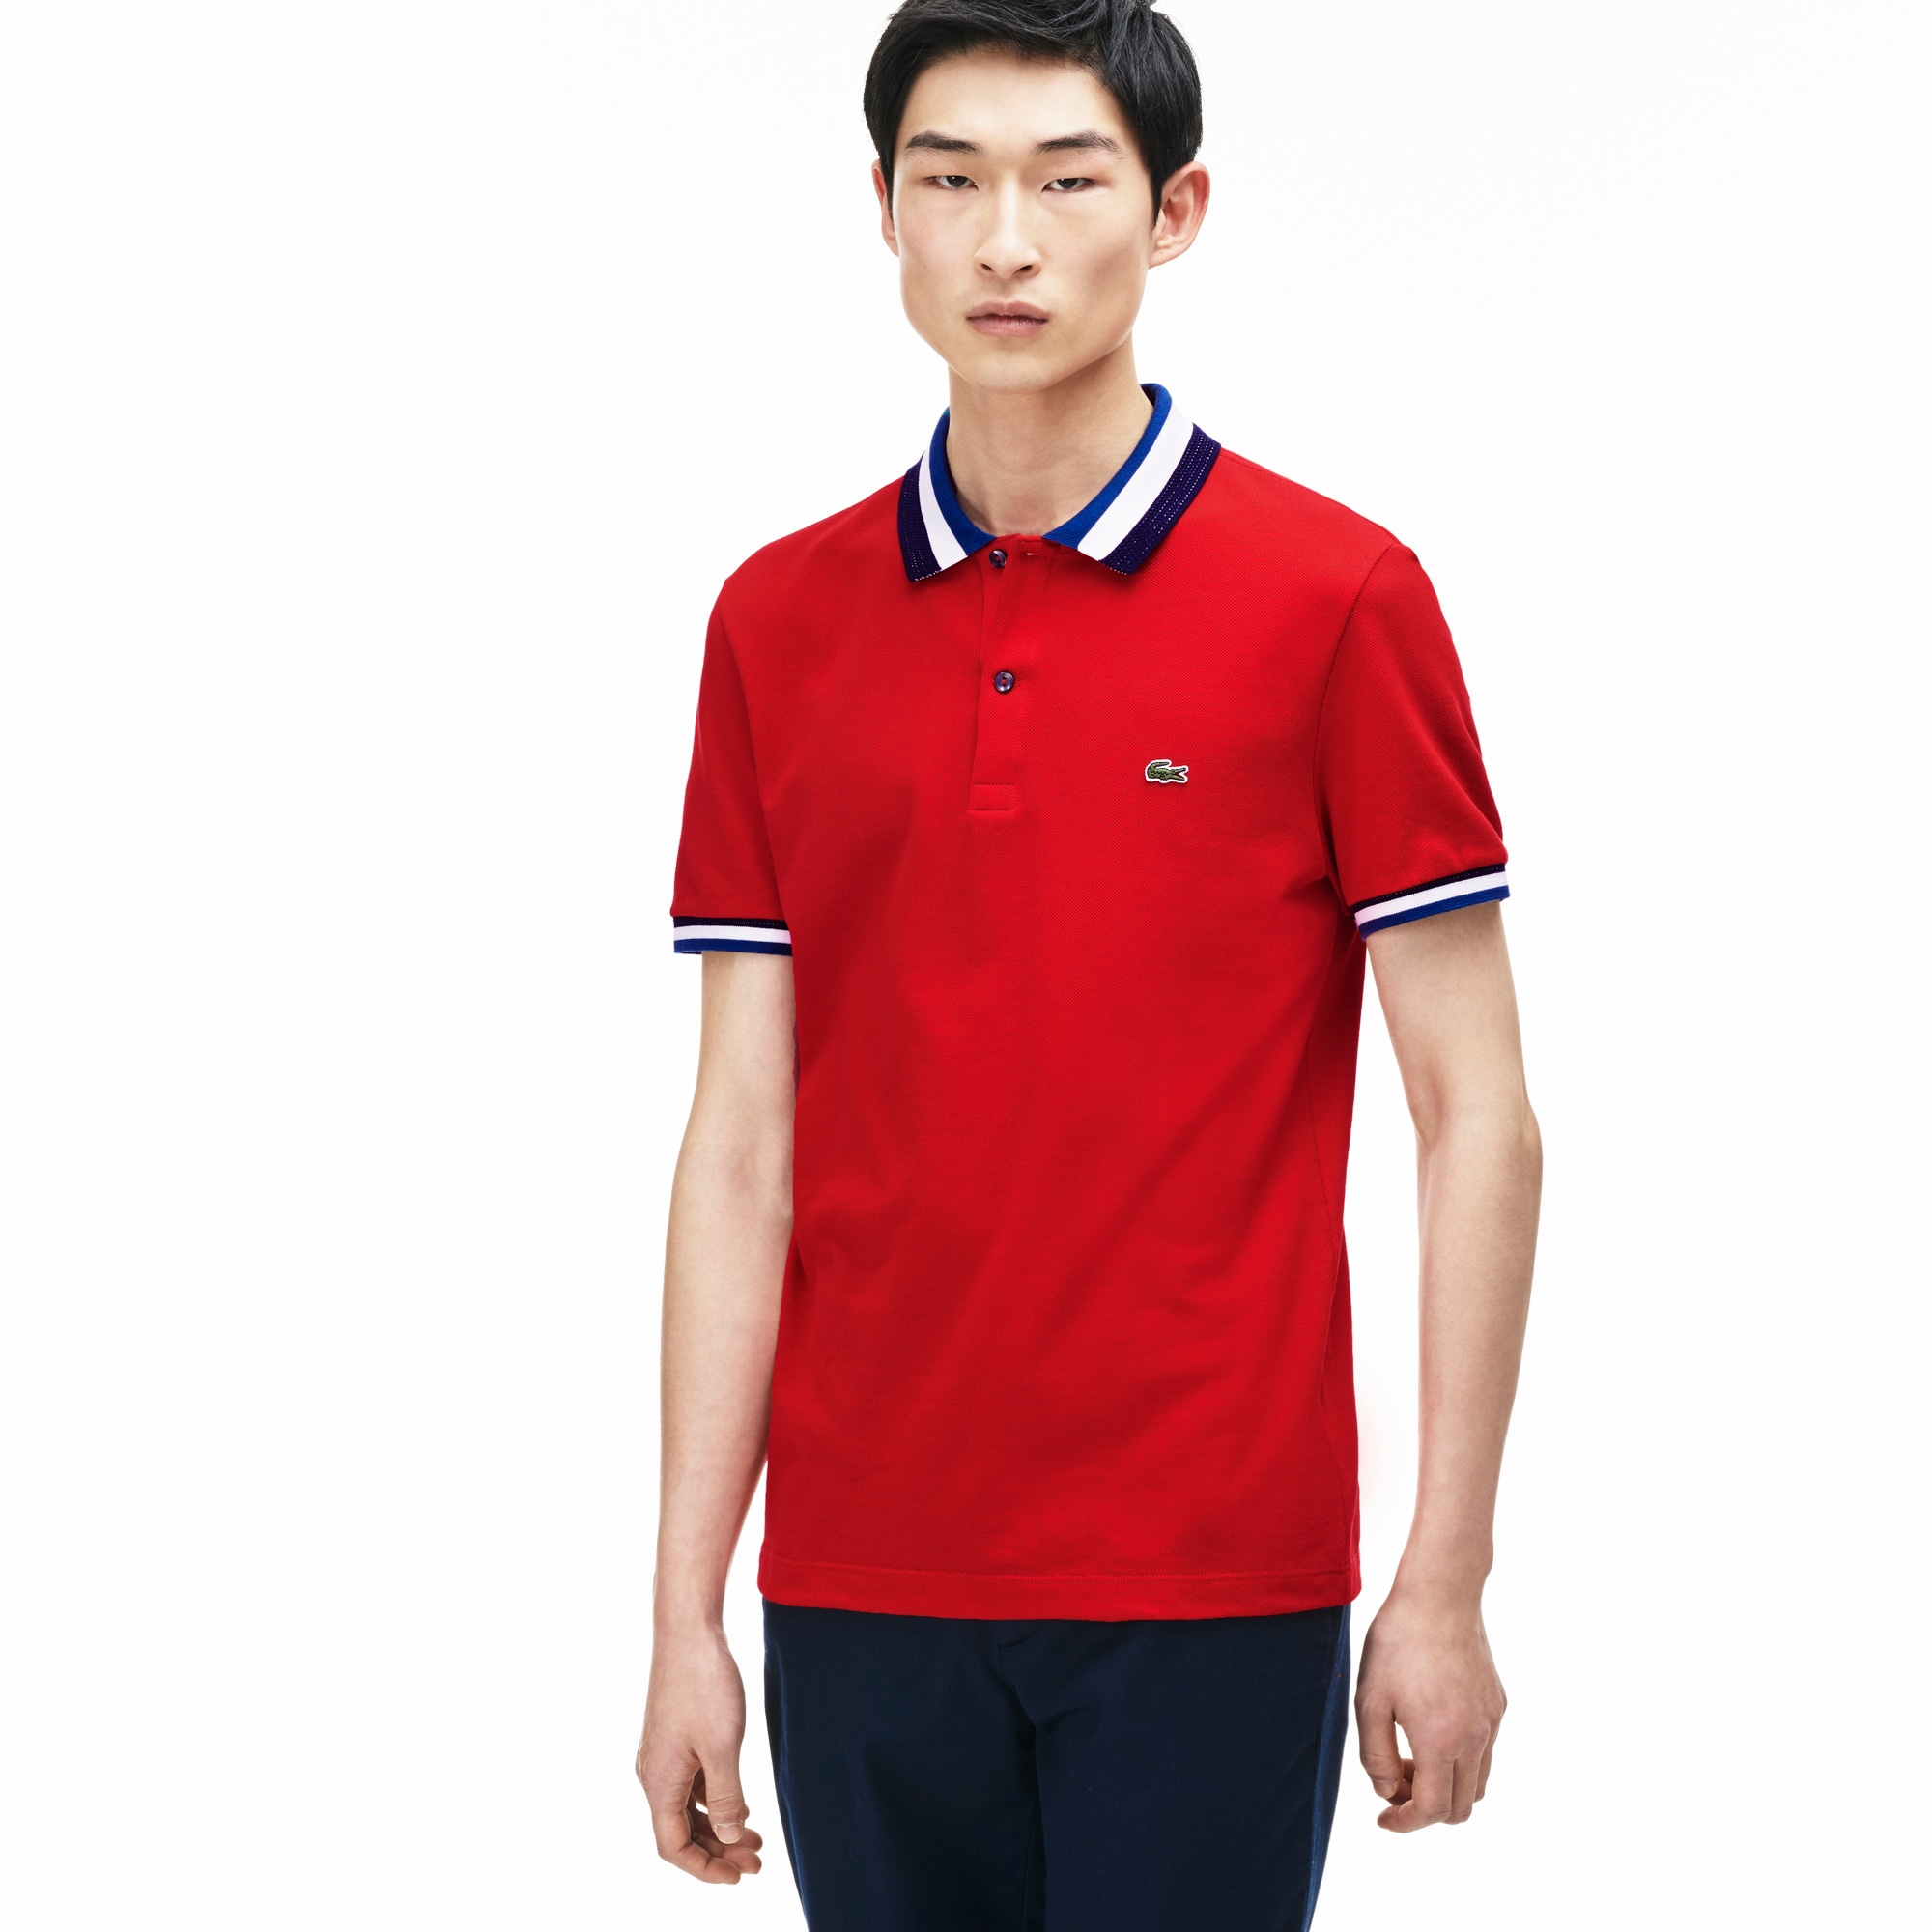 Men's Lacoste Matte Piping Petit Piqué Slim Fit Polo